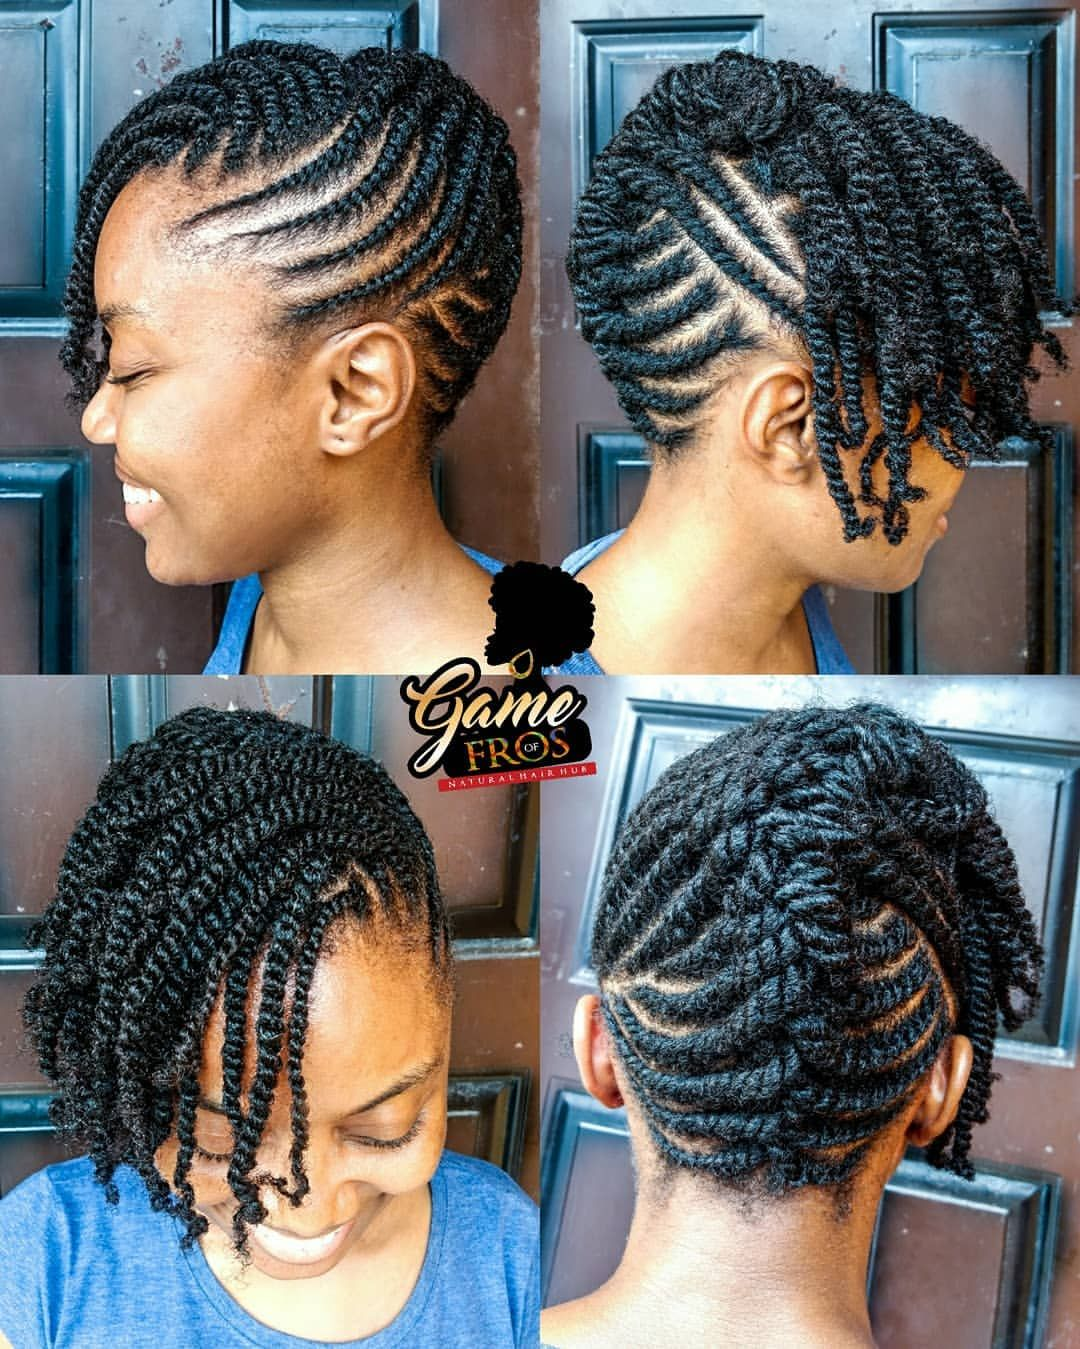 575 Likes 8 Comments Leading Natural Hair Brand